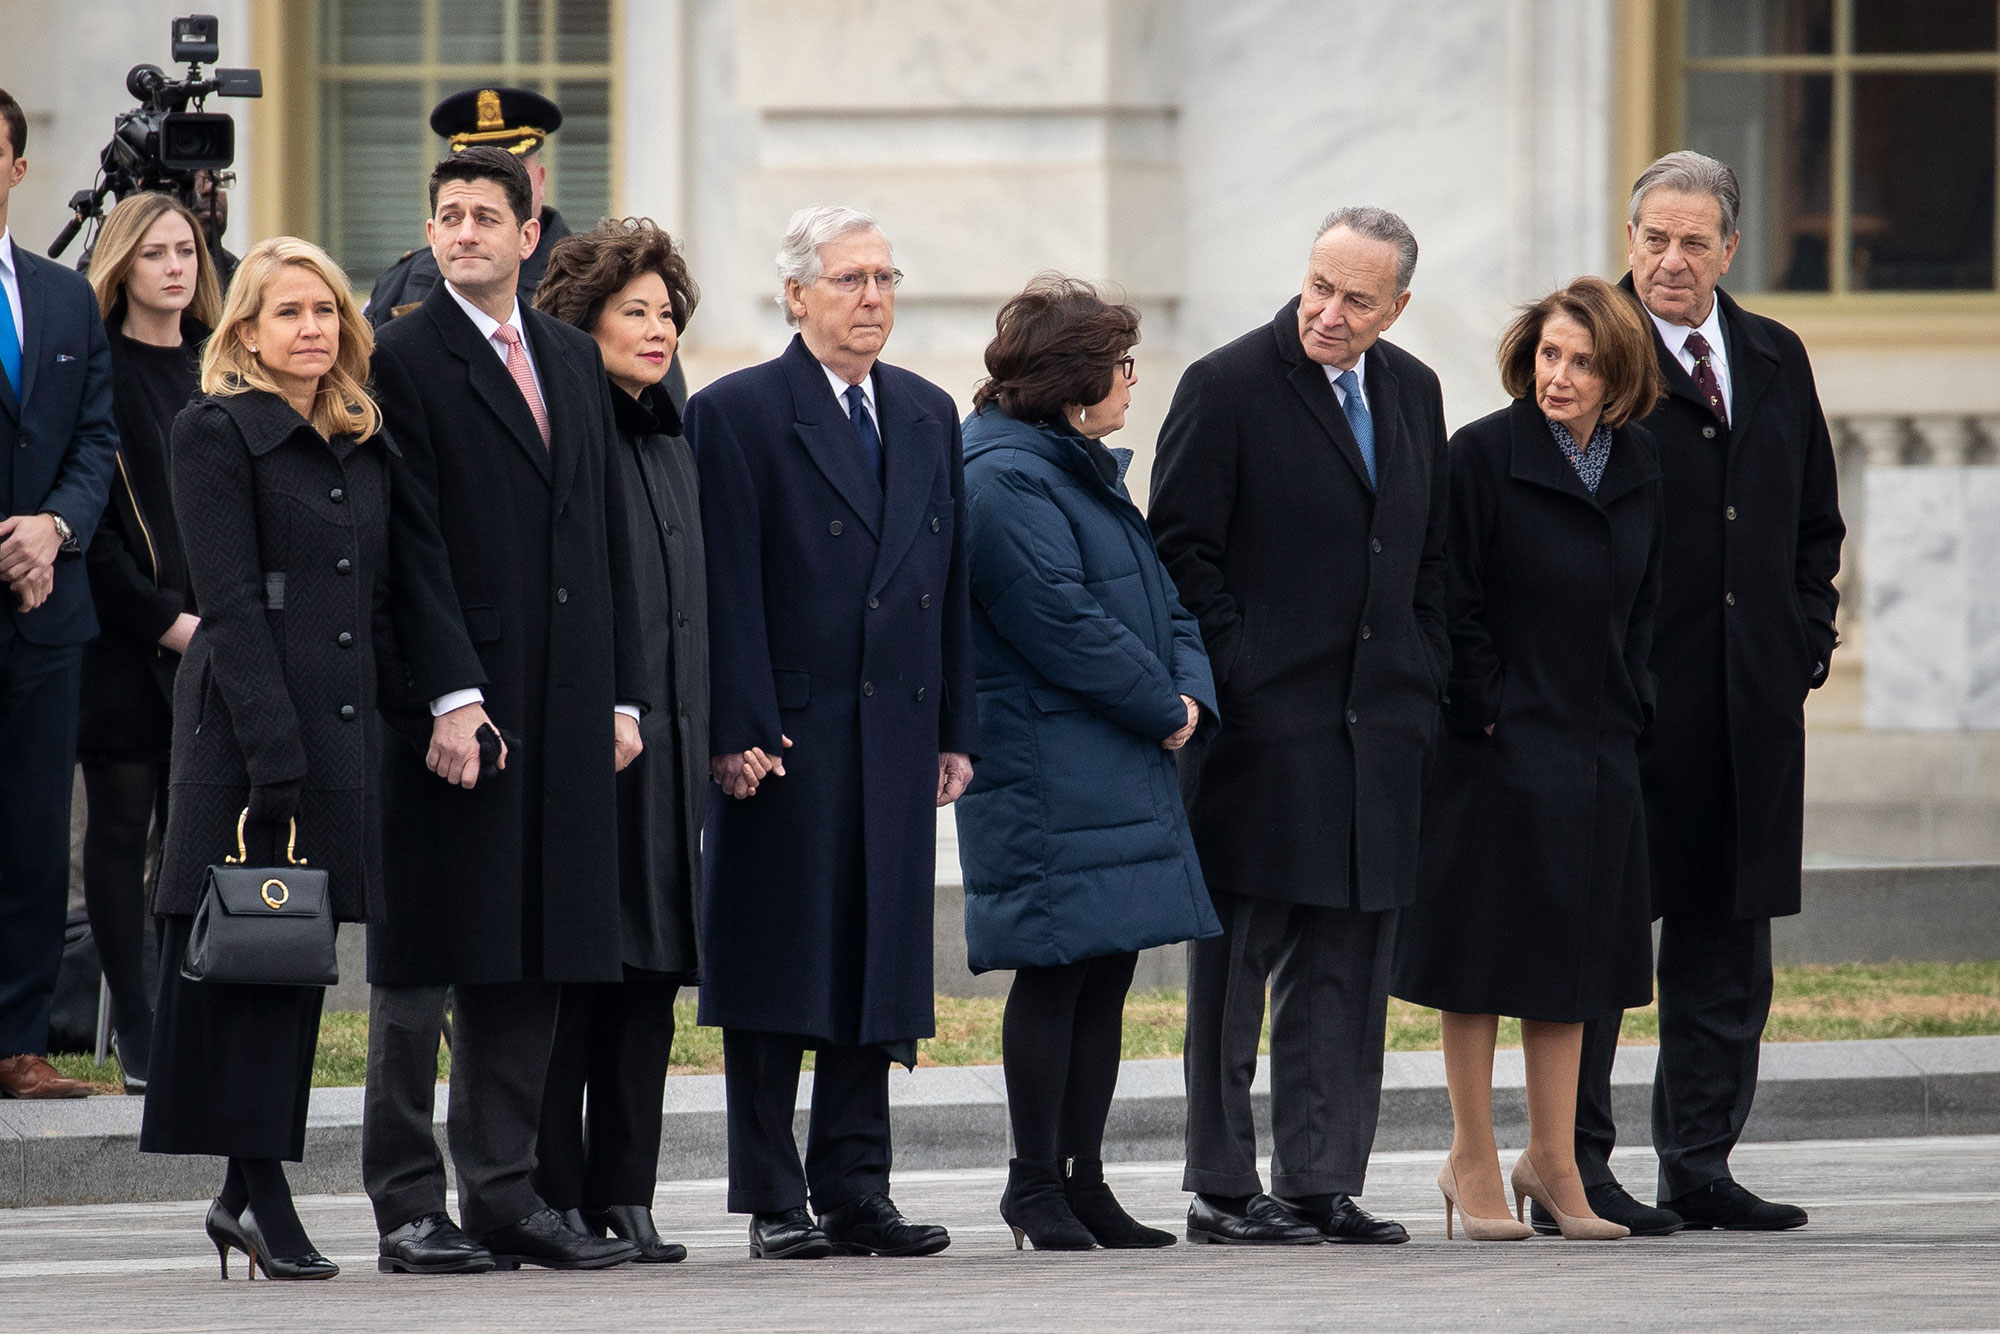 "<div class=""meta image-caption""><div class=""origin-logo origin-image none""><span>none</span></div><span class=""caption-text"">Janna Ryan, Paul Ryan, Elaine Chao, Mitch McConnell, Iris Weinshall, Chuck Schumer, Nancy Pelosi and Paul Pelosi await the departure of the casket.</span></div>"